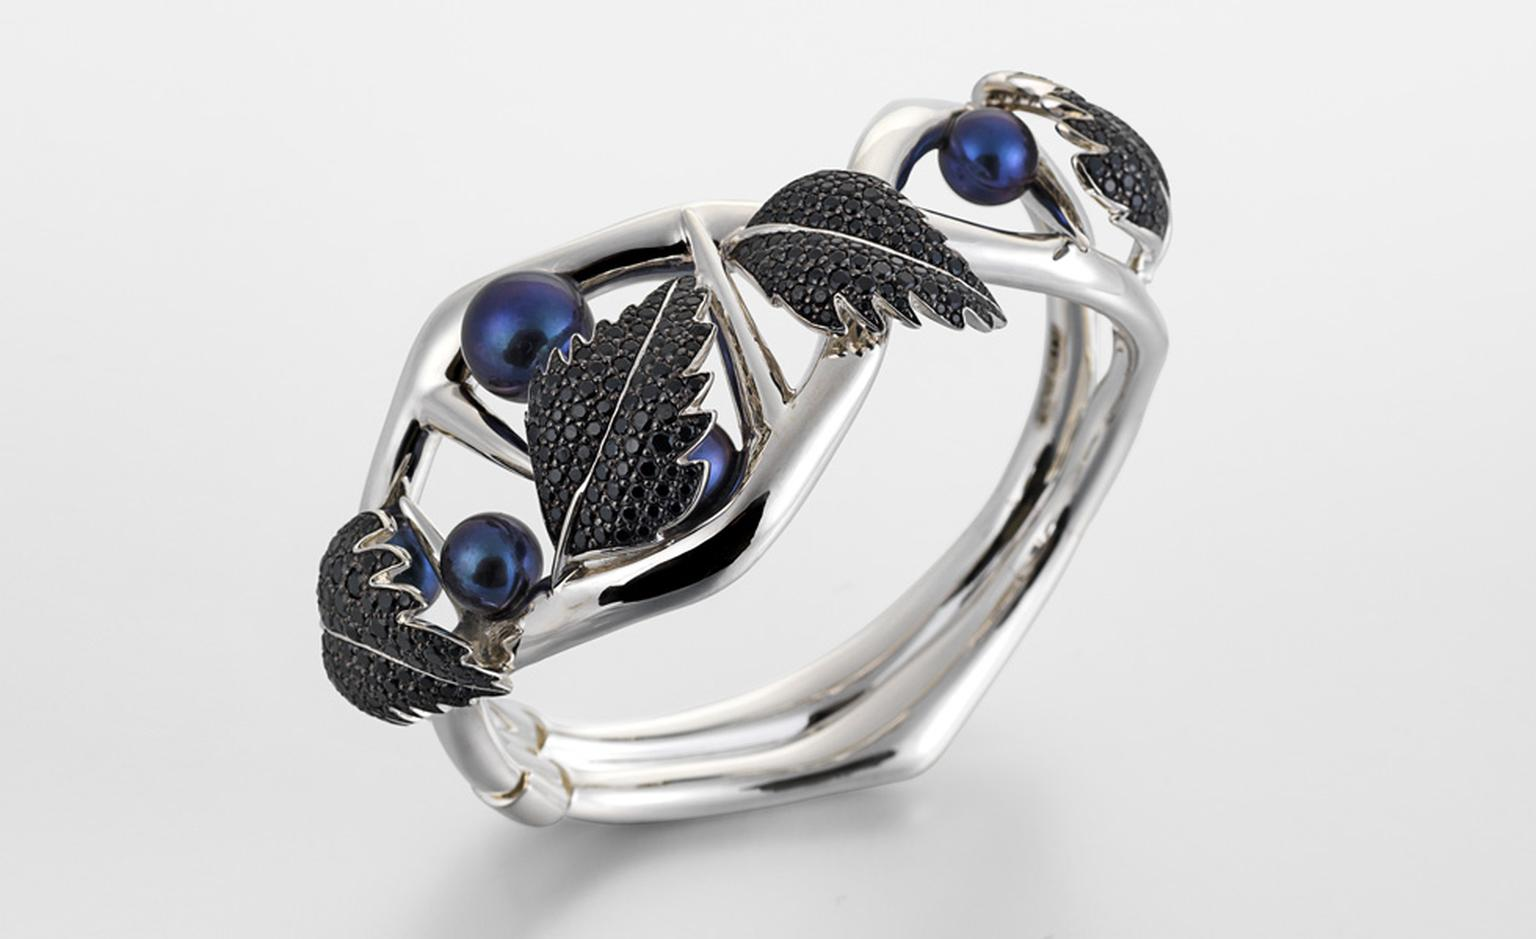 SILVER BLACKTHORN CUFF WITH BLACK SPINEL LEAVES & BLACK PEARLS by Shaun Leane £1,995